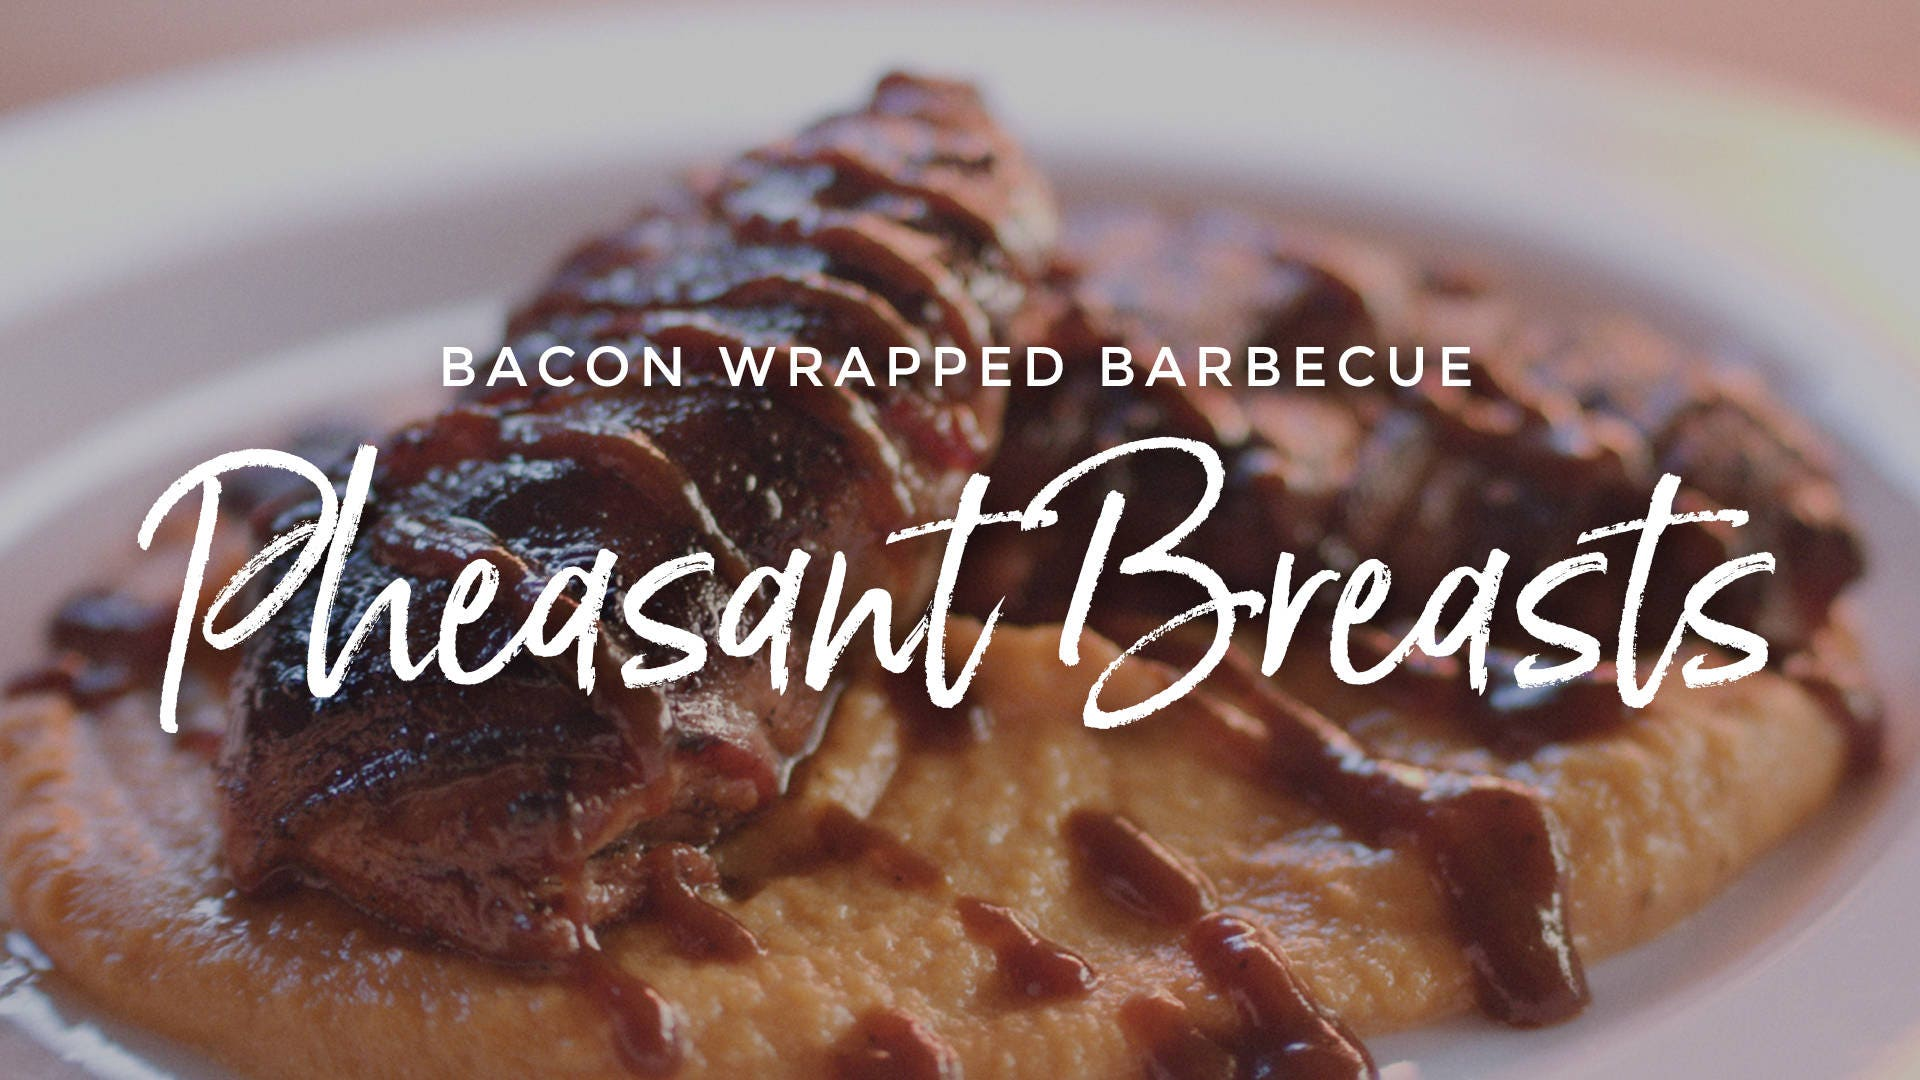 How to make Bacon Wrapped Barbecue Pheasant Breasts